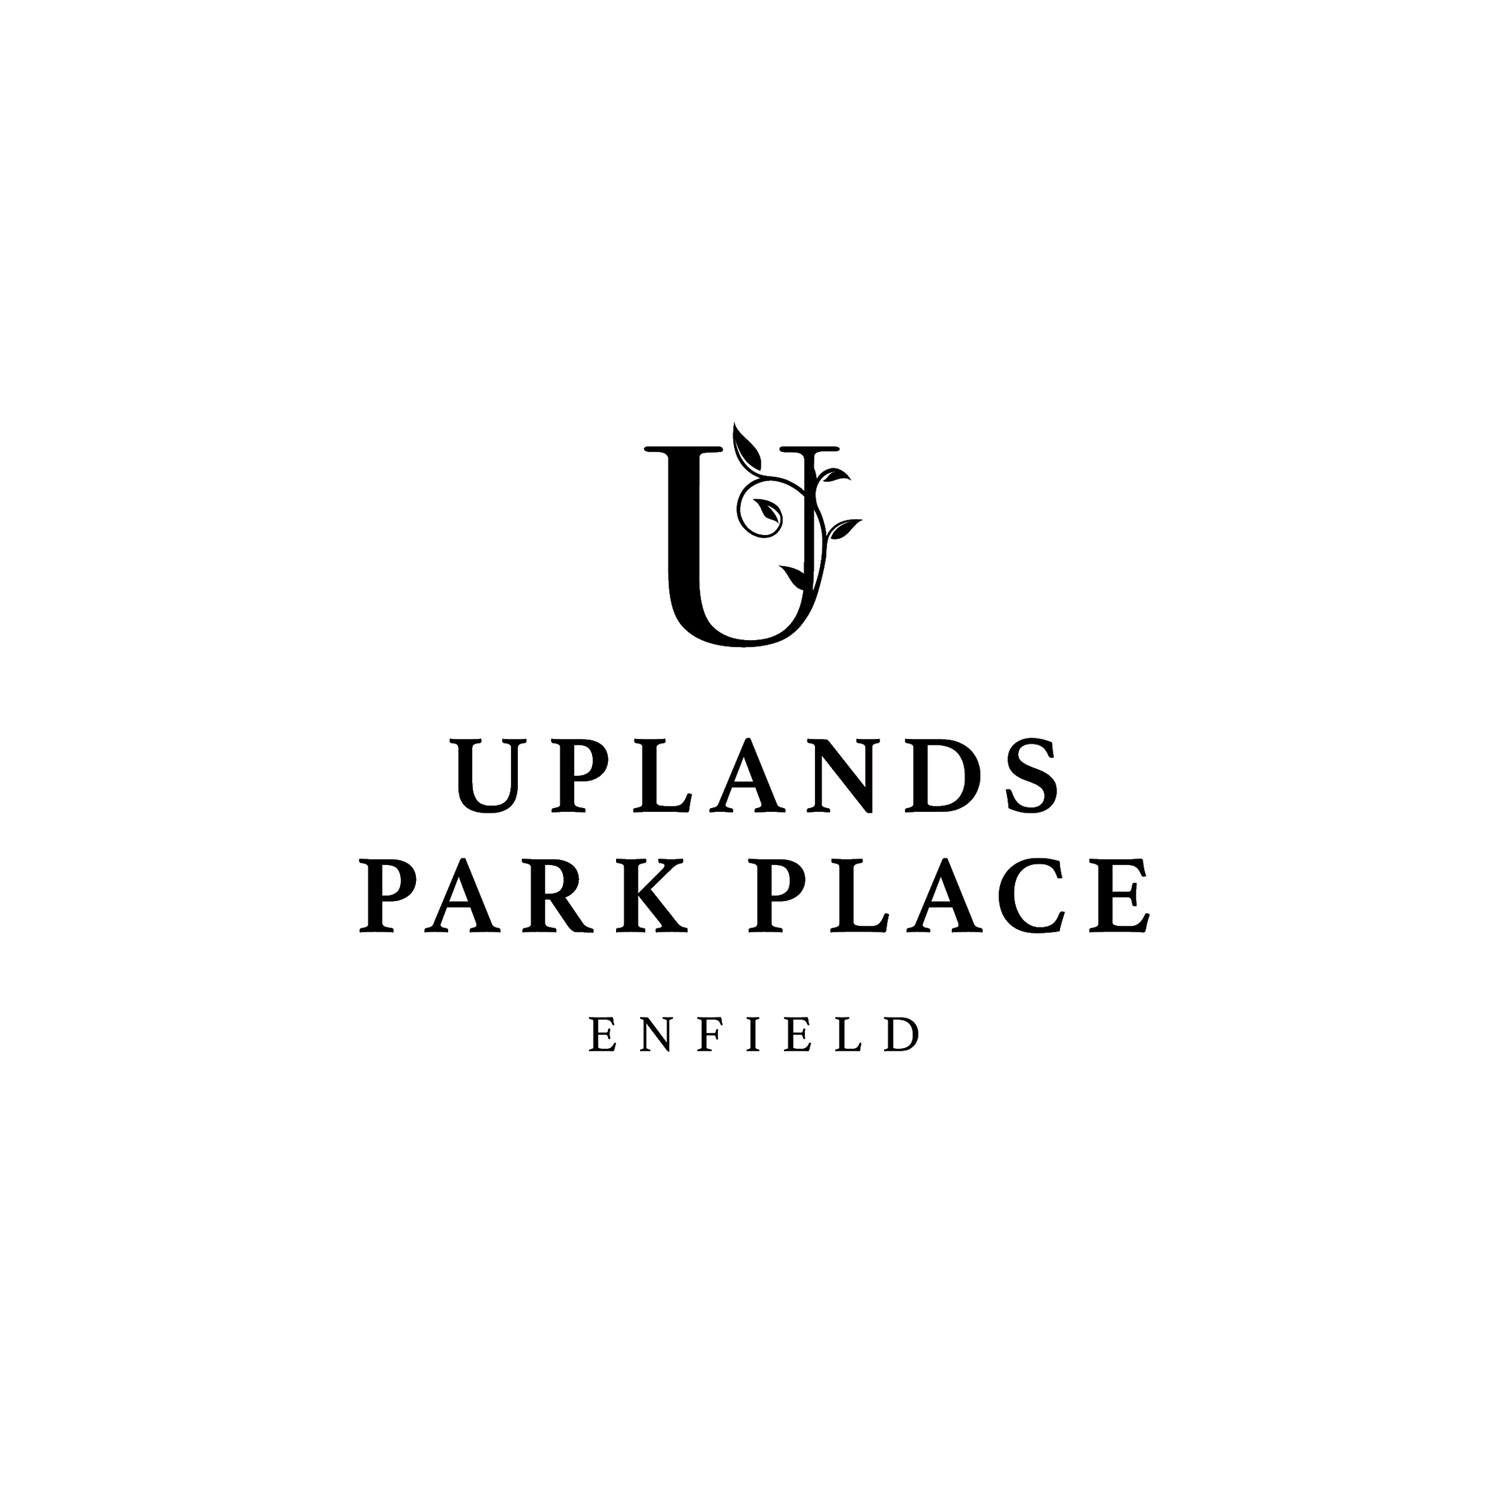 Uplands Park Place development in Enfield by Shanly Homes.